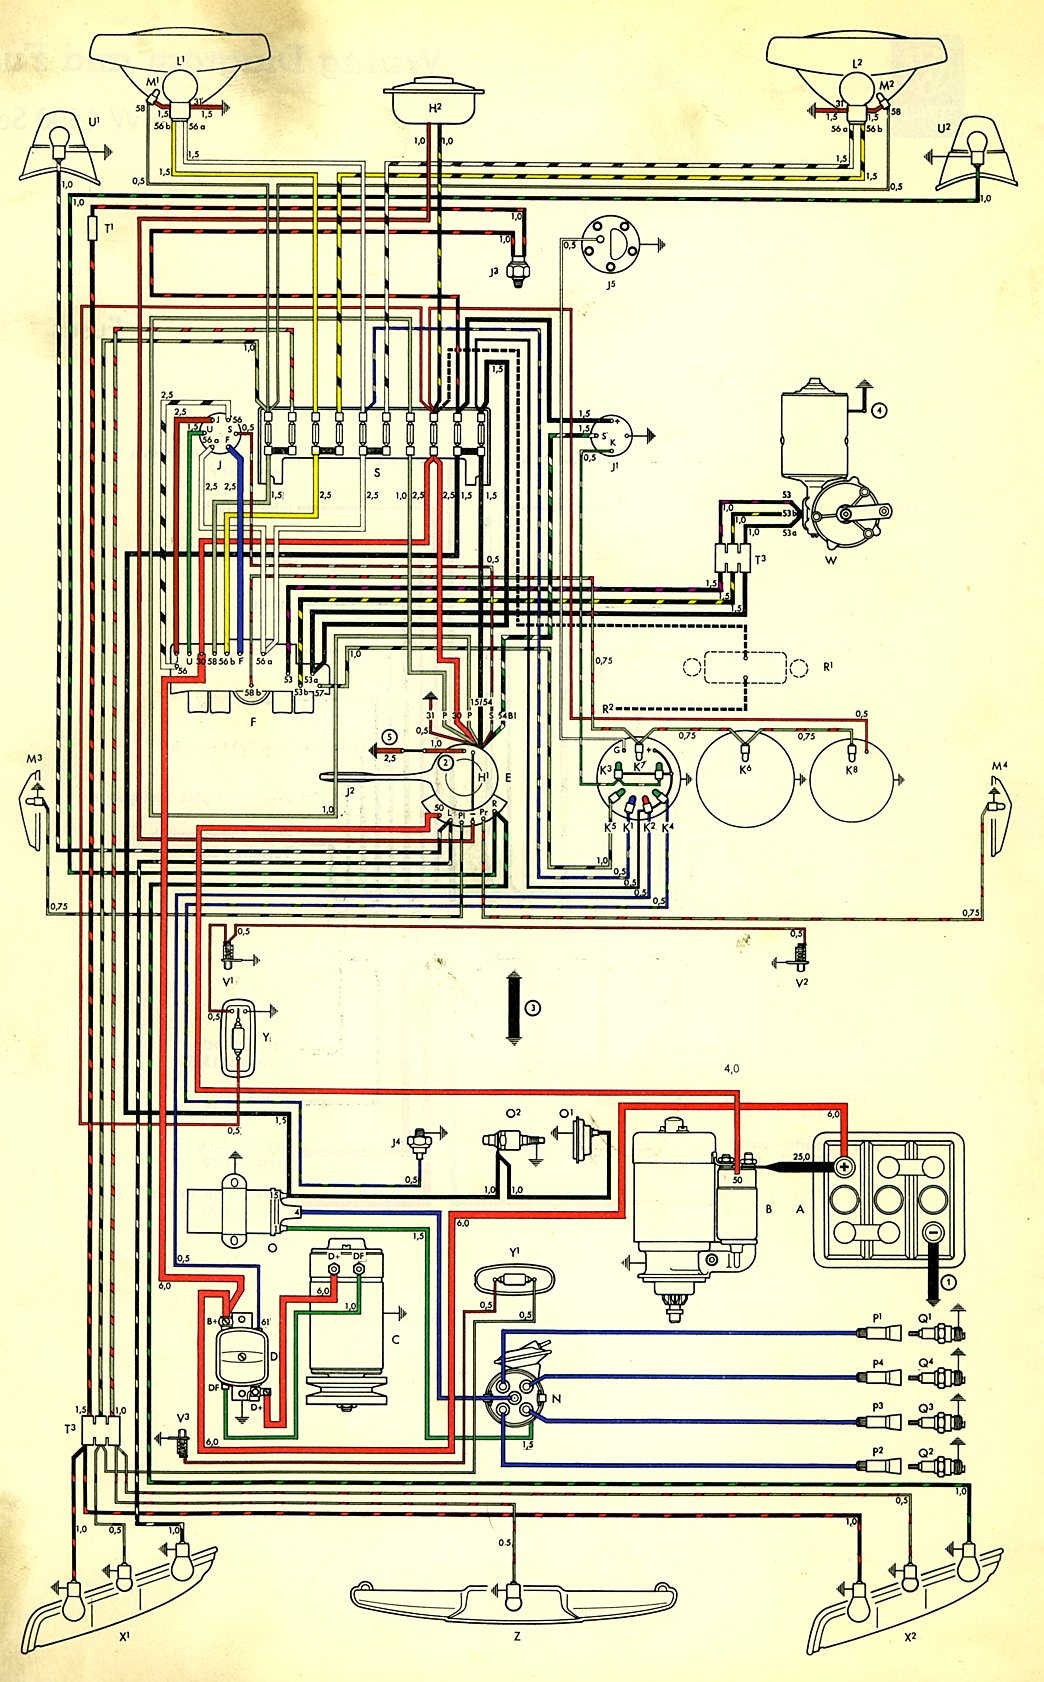 hight resolution of daihatsu rocky wiring diagram wiring library chevrolet tracker wiring diagram daihatsu rocky wiring diagram